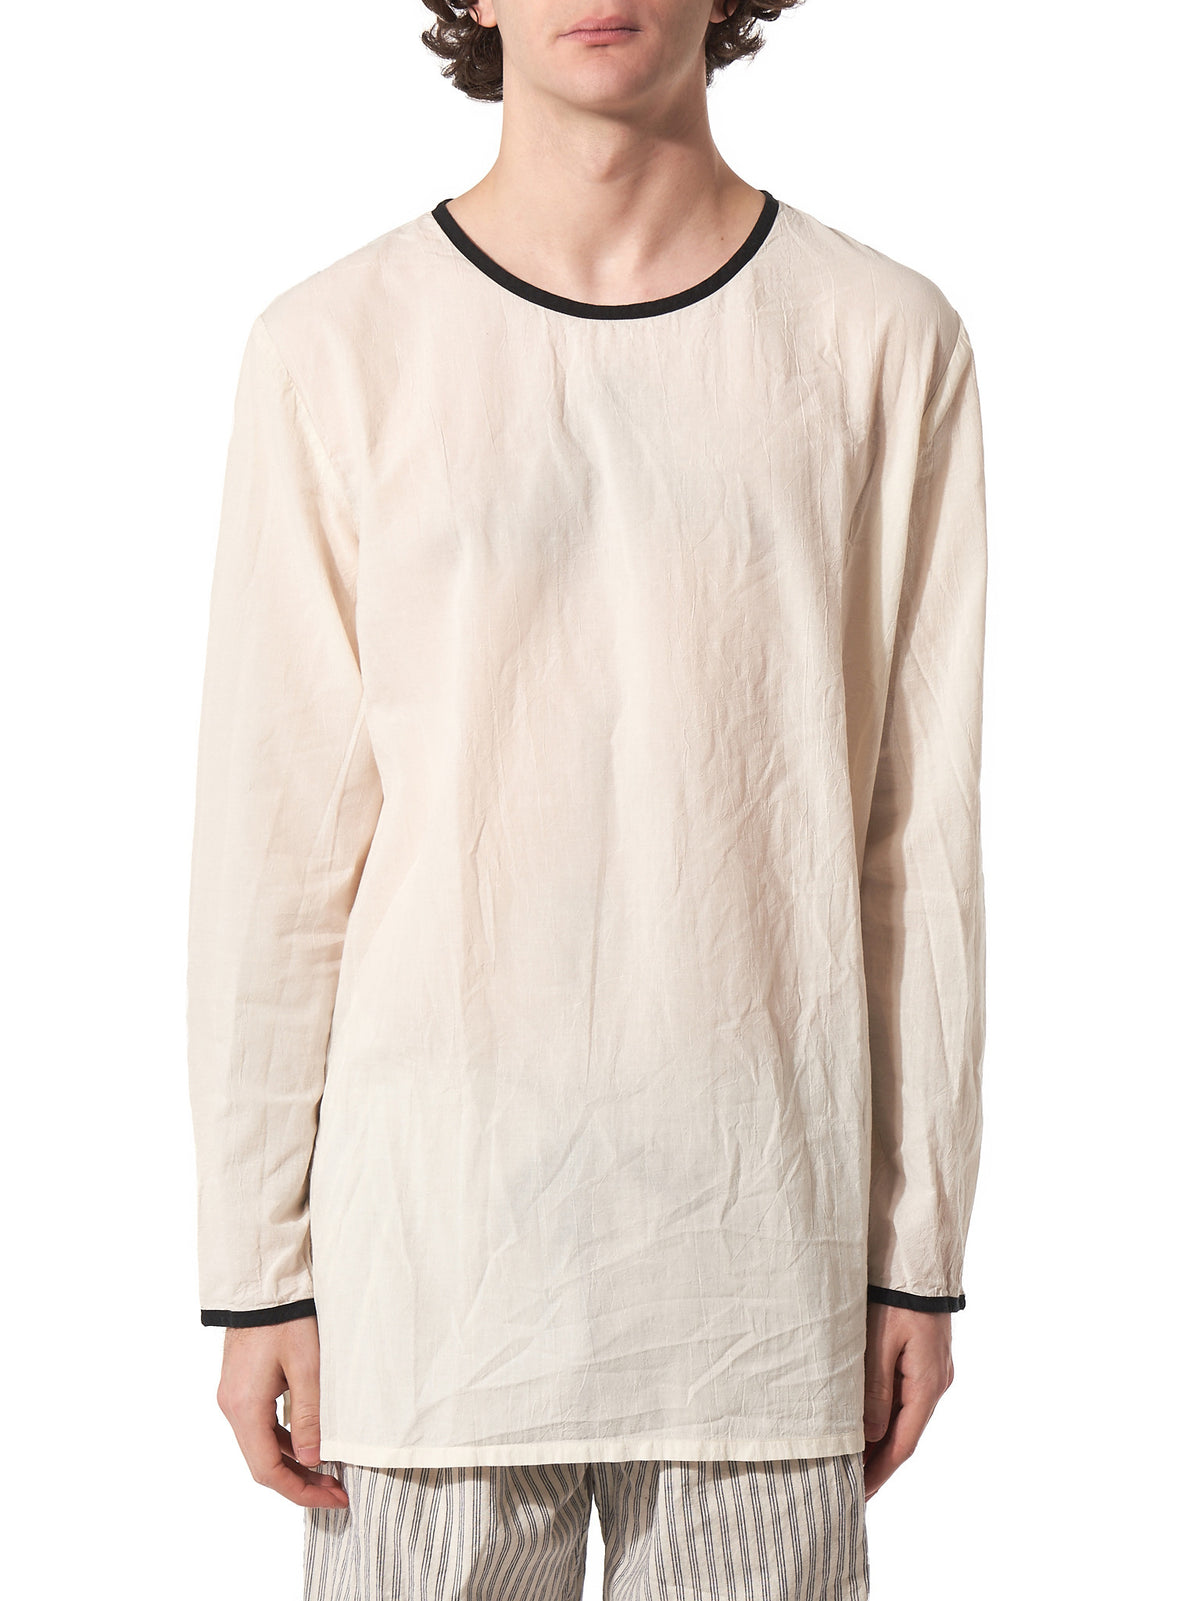 Long-Sleeved Cotton Tee (S17T03 OFF-WHITE) - H. Lorenzo